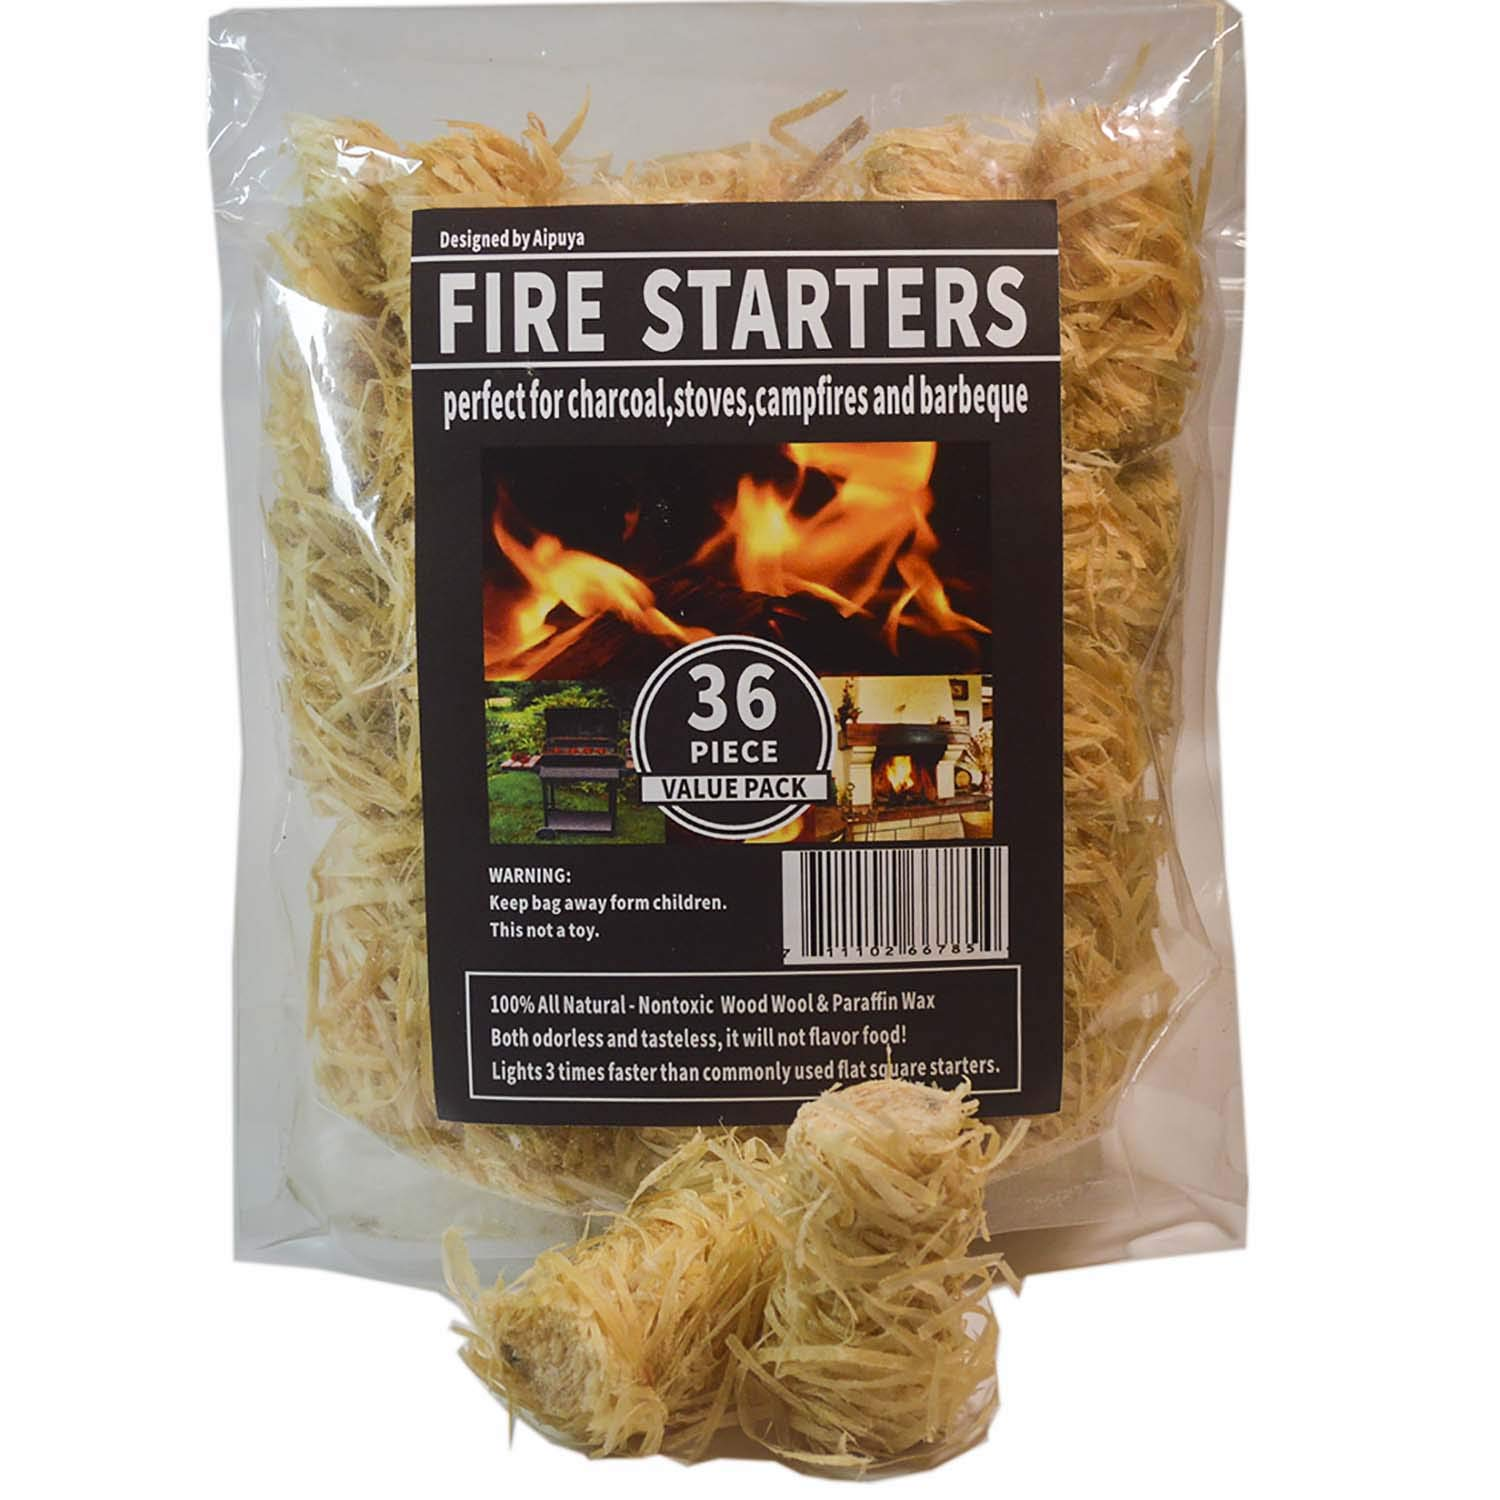 100% All Natural Charcoal Fire Starters Waterproof,Super Fast Lighting,Perfect for Barbecue Grills, Kamado, Smokers, Wood Stove and Campfire (36pieces) by Aipuya